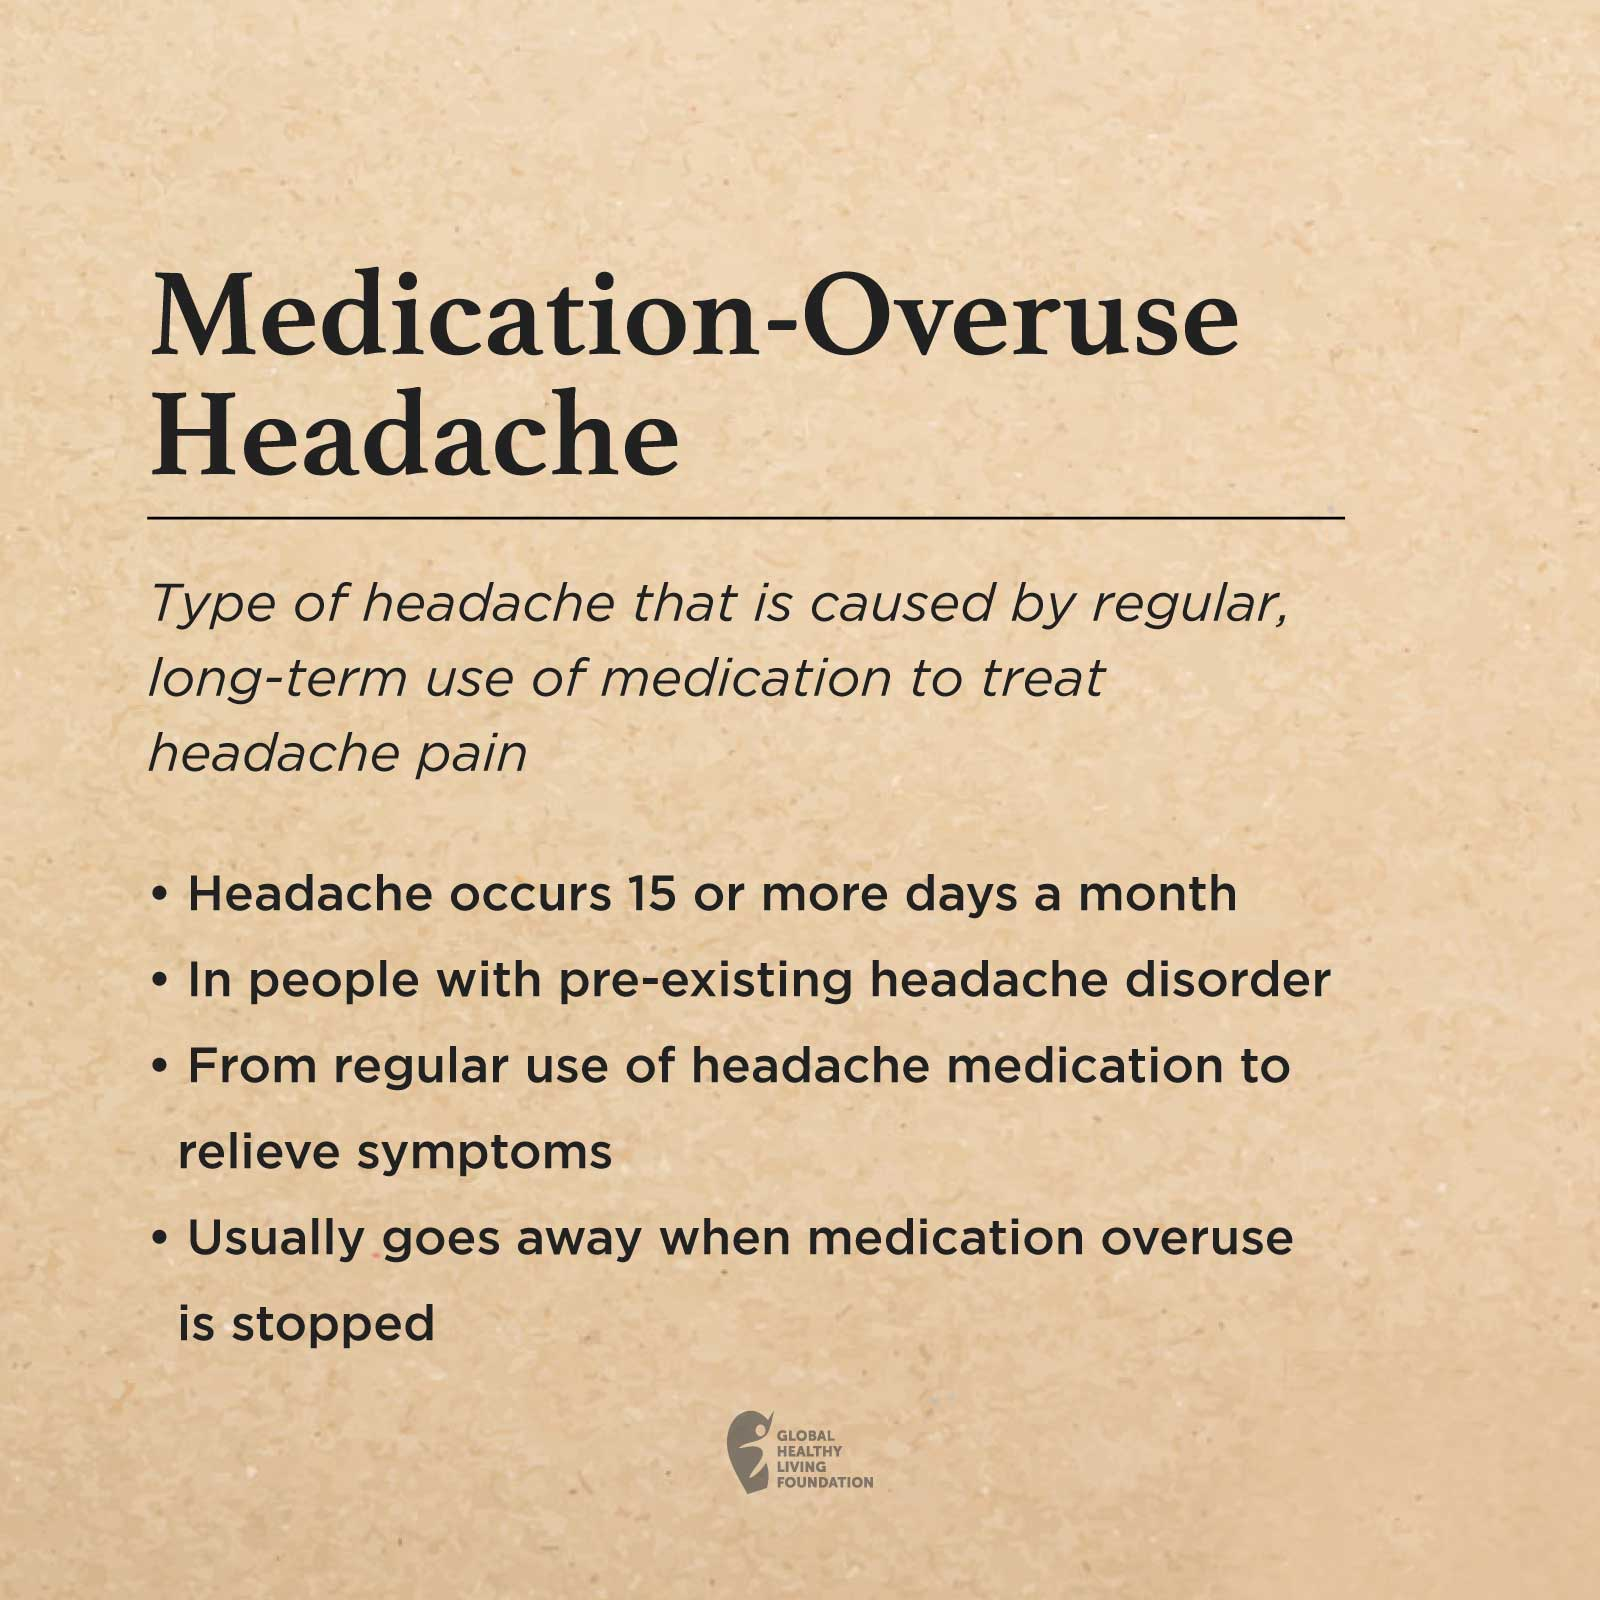 A Brown Box With The Following Text: Medication-Overuse Headache Type Of Headache That Is Caused By Regular, Long-term Use Of Medication To Treat Headache Pain Headache Occurs 15 Or More Days A Month In People With Pre-existing Headache Disorder From Regular Use Of Headache Medication To Relieve Symptoms Usually Goes Away When Medication Overuse Is Stopped